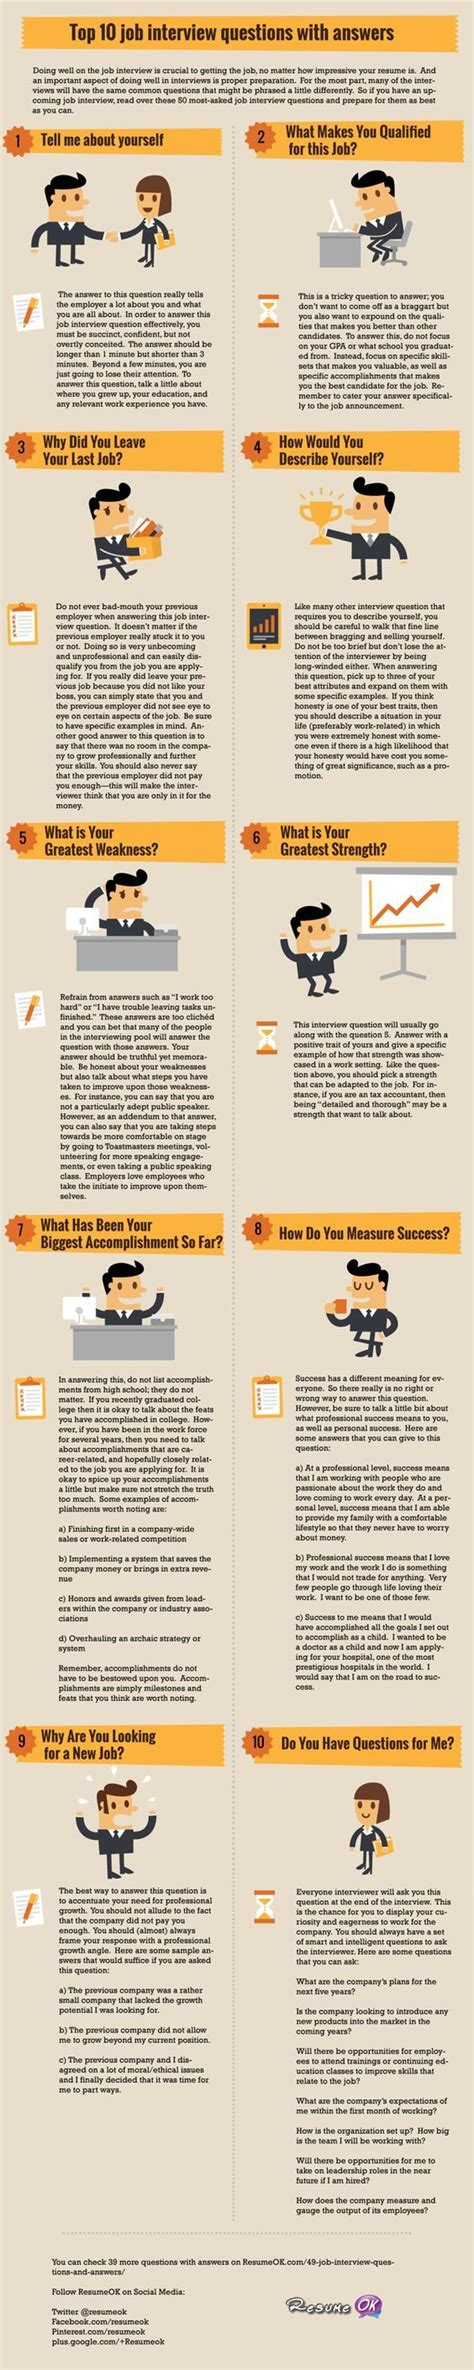 infographic top questions with answers repin to your friends and help them pa